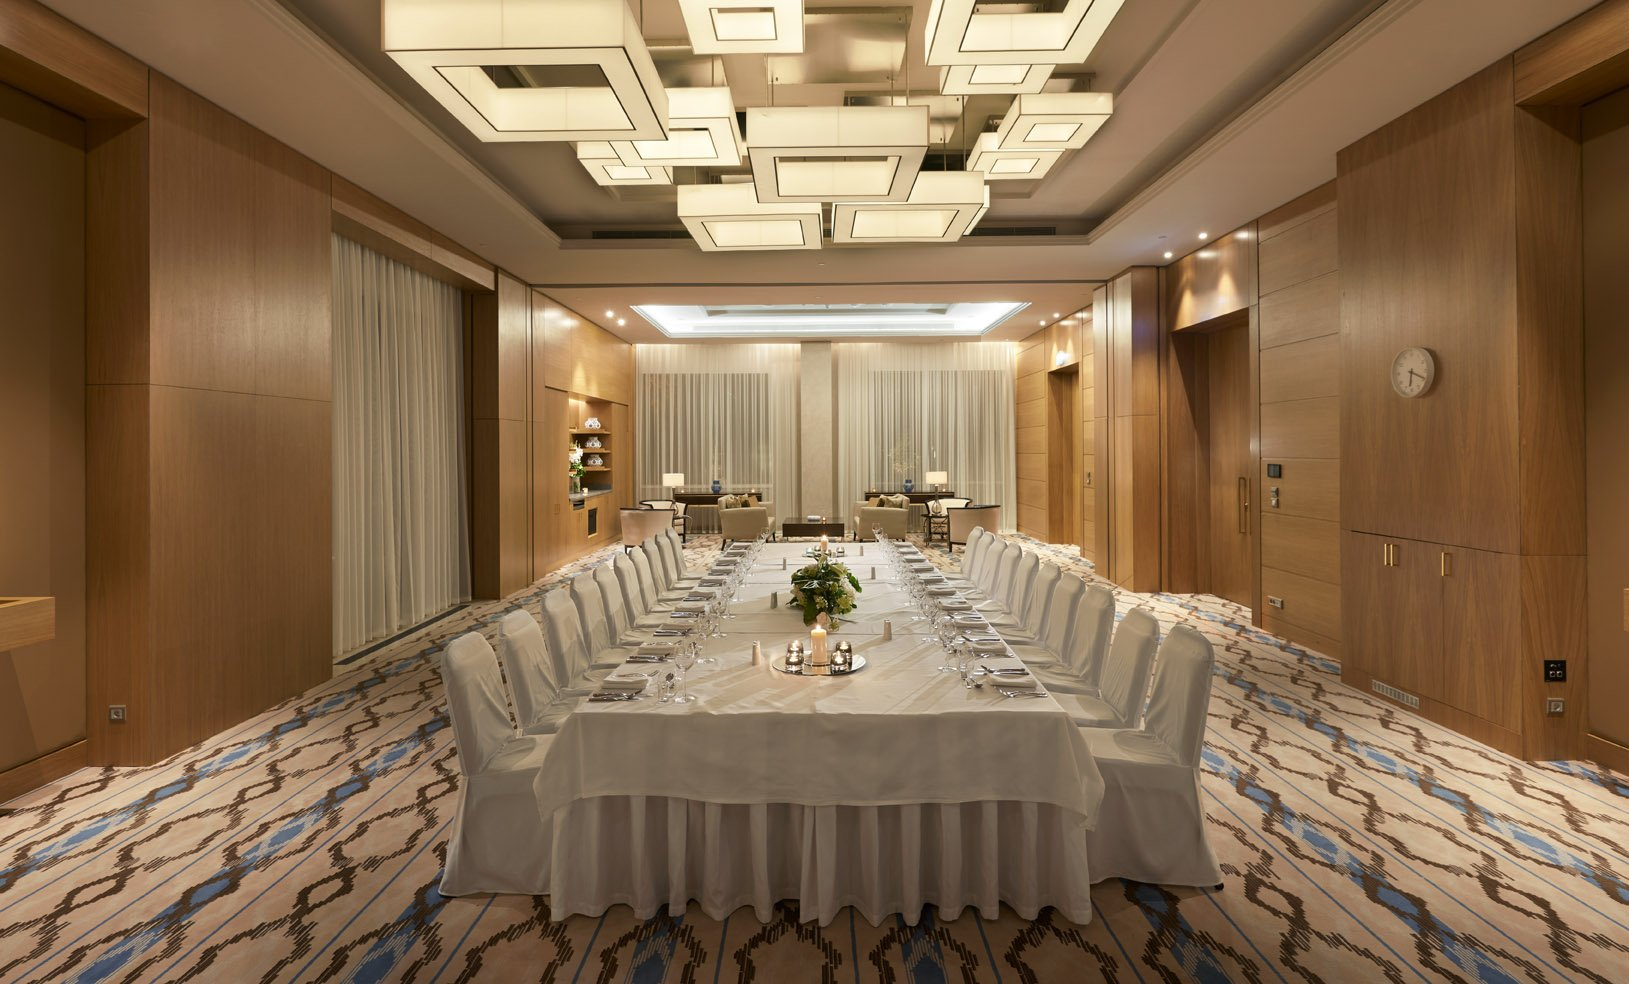 Samarkand Meeting room Dinner Boardroom set up - Hyatt Regency